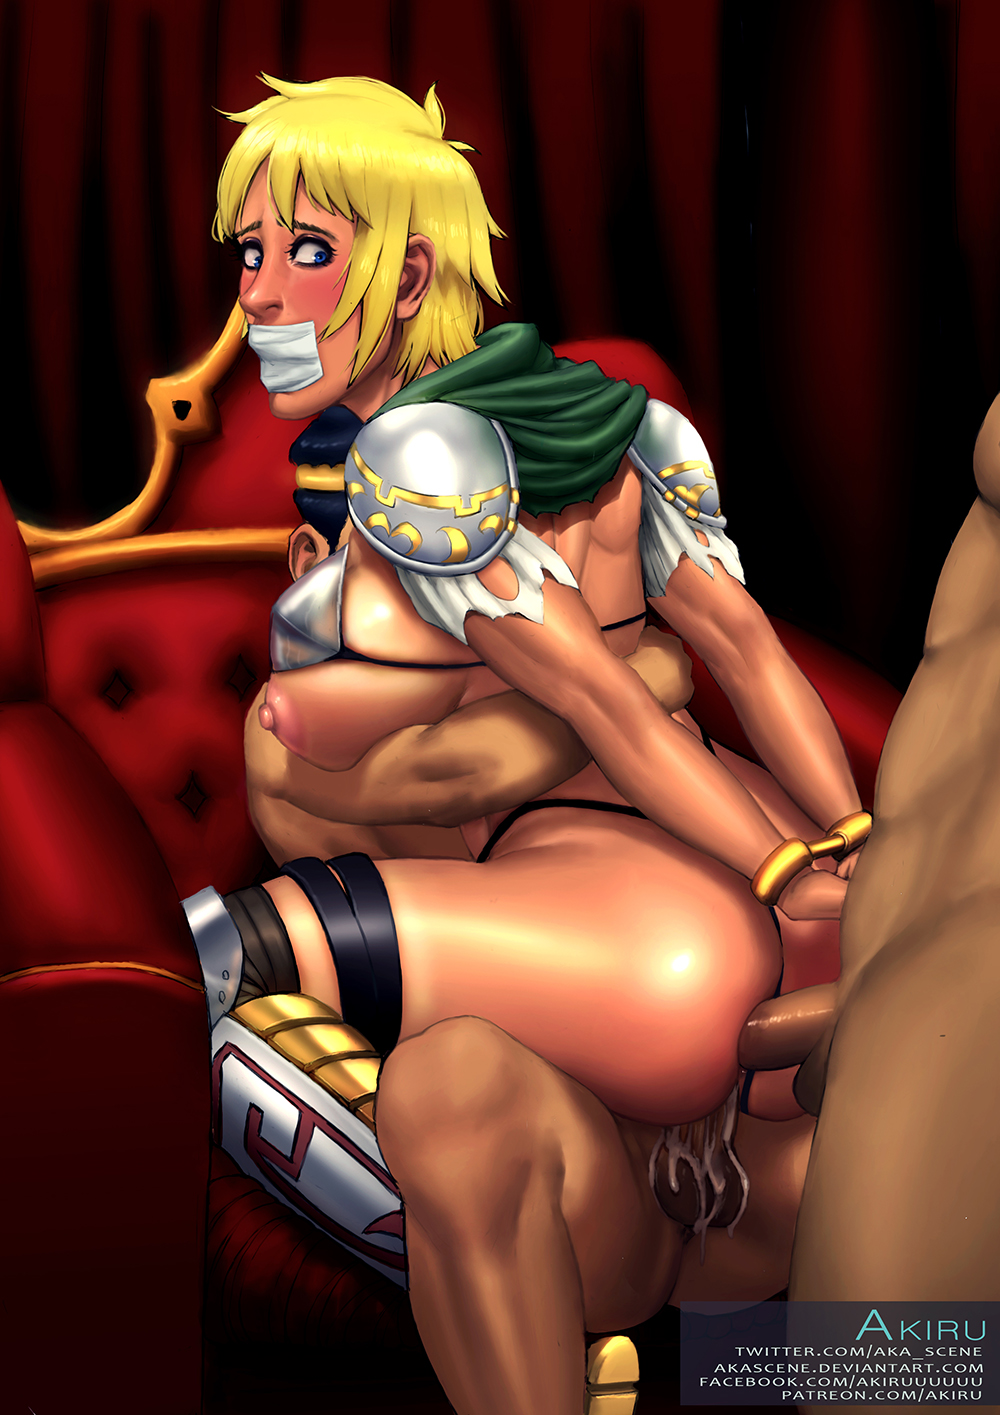 in a reverse cowgirl chair Ahsoka tano and barriss offee kiss